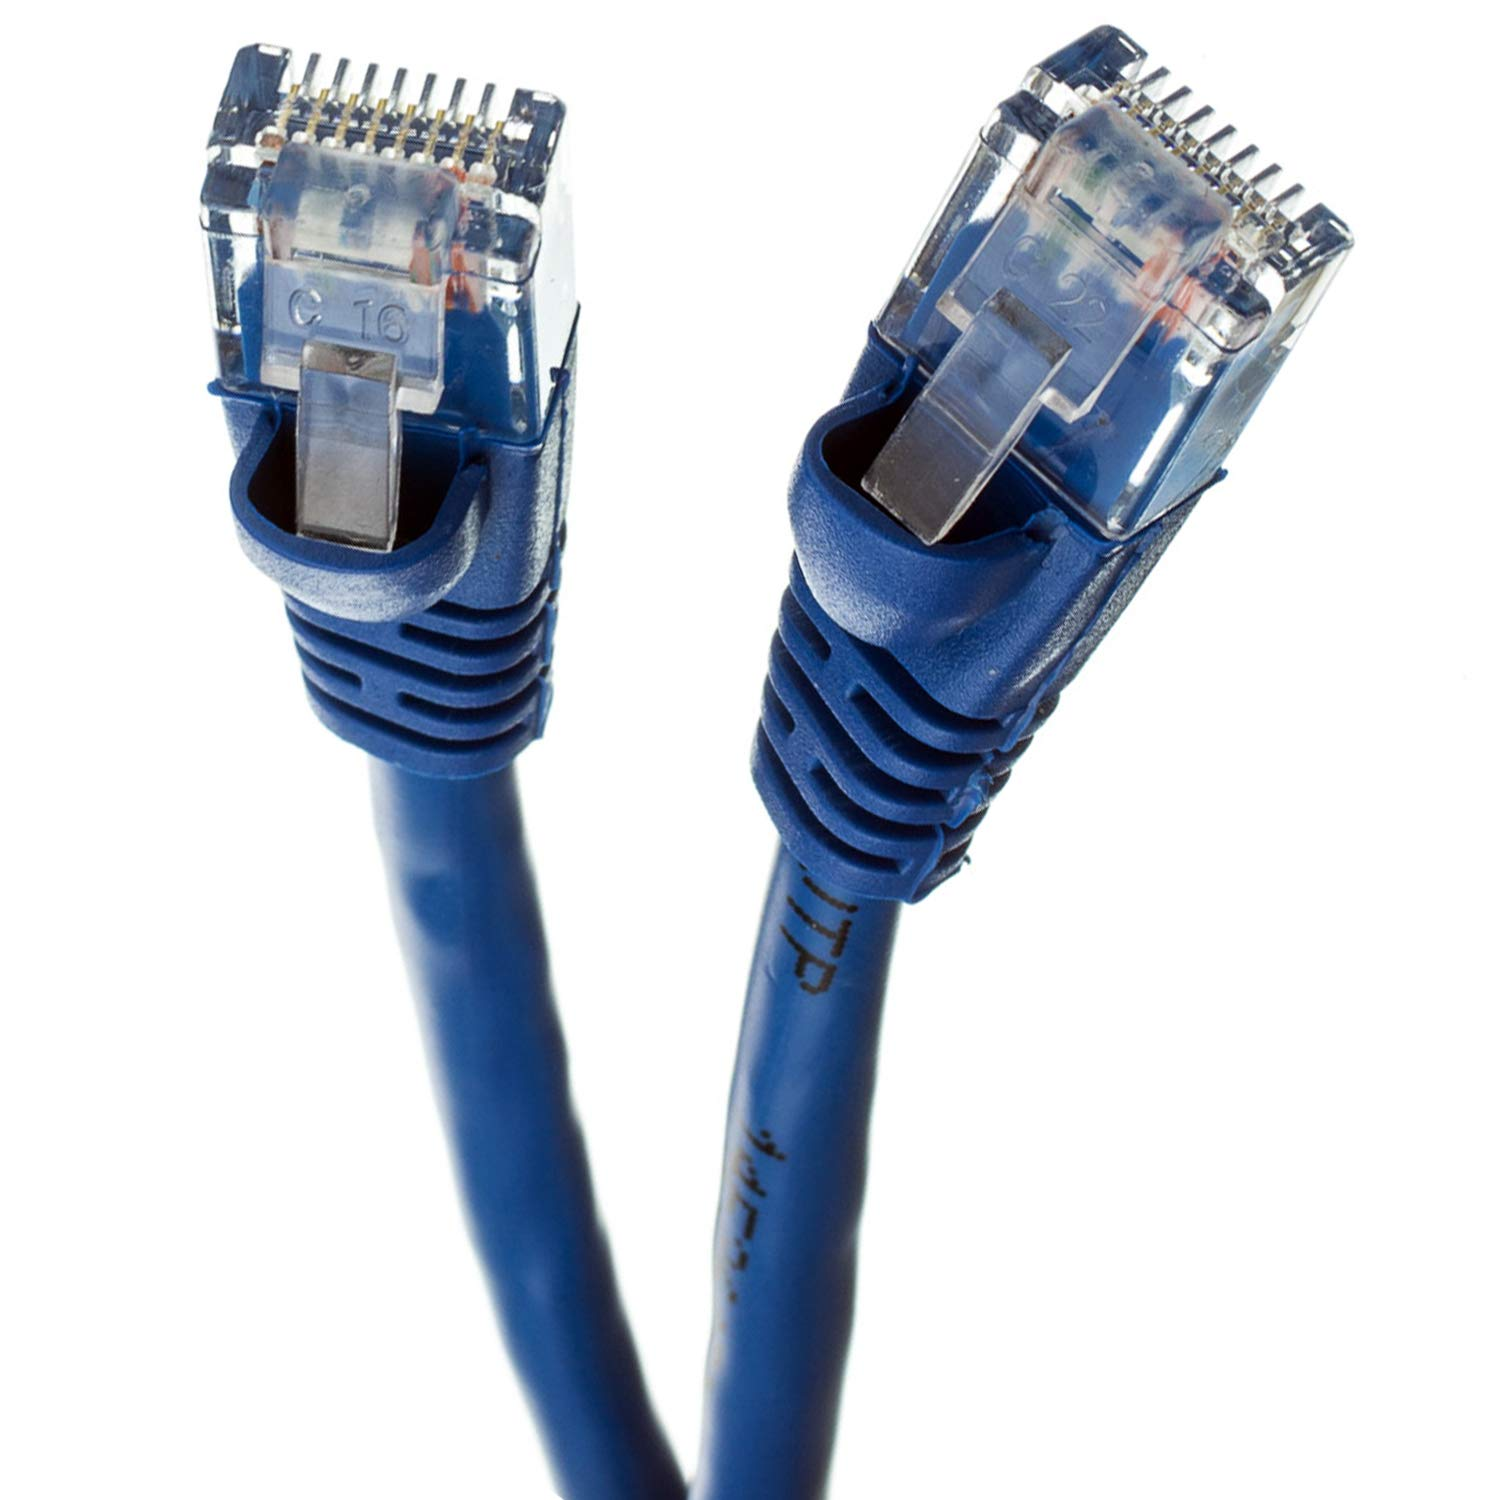 GOWOS 20-Pack Computer Network Cable with Snagless Connector UTP Available in 28 Lengths and 10 Colors 10 Feet - Blue RJ45 10Gbps High Speed LAN Internet Patch Cord Cat5e Ethernet Cable